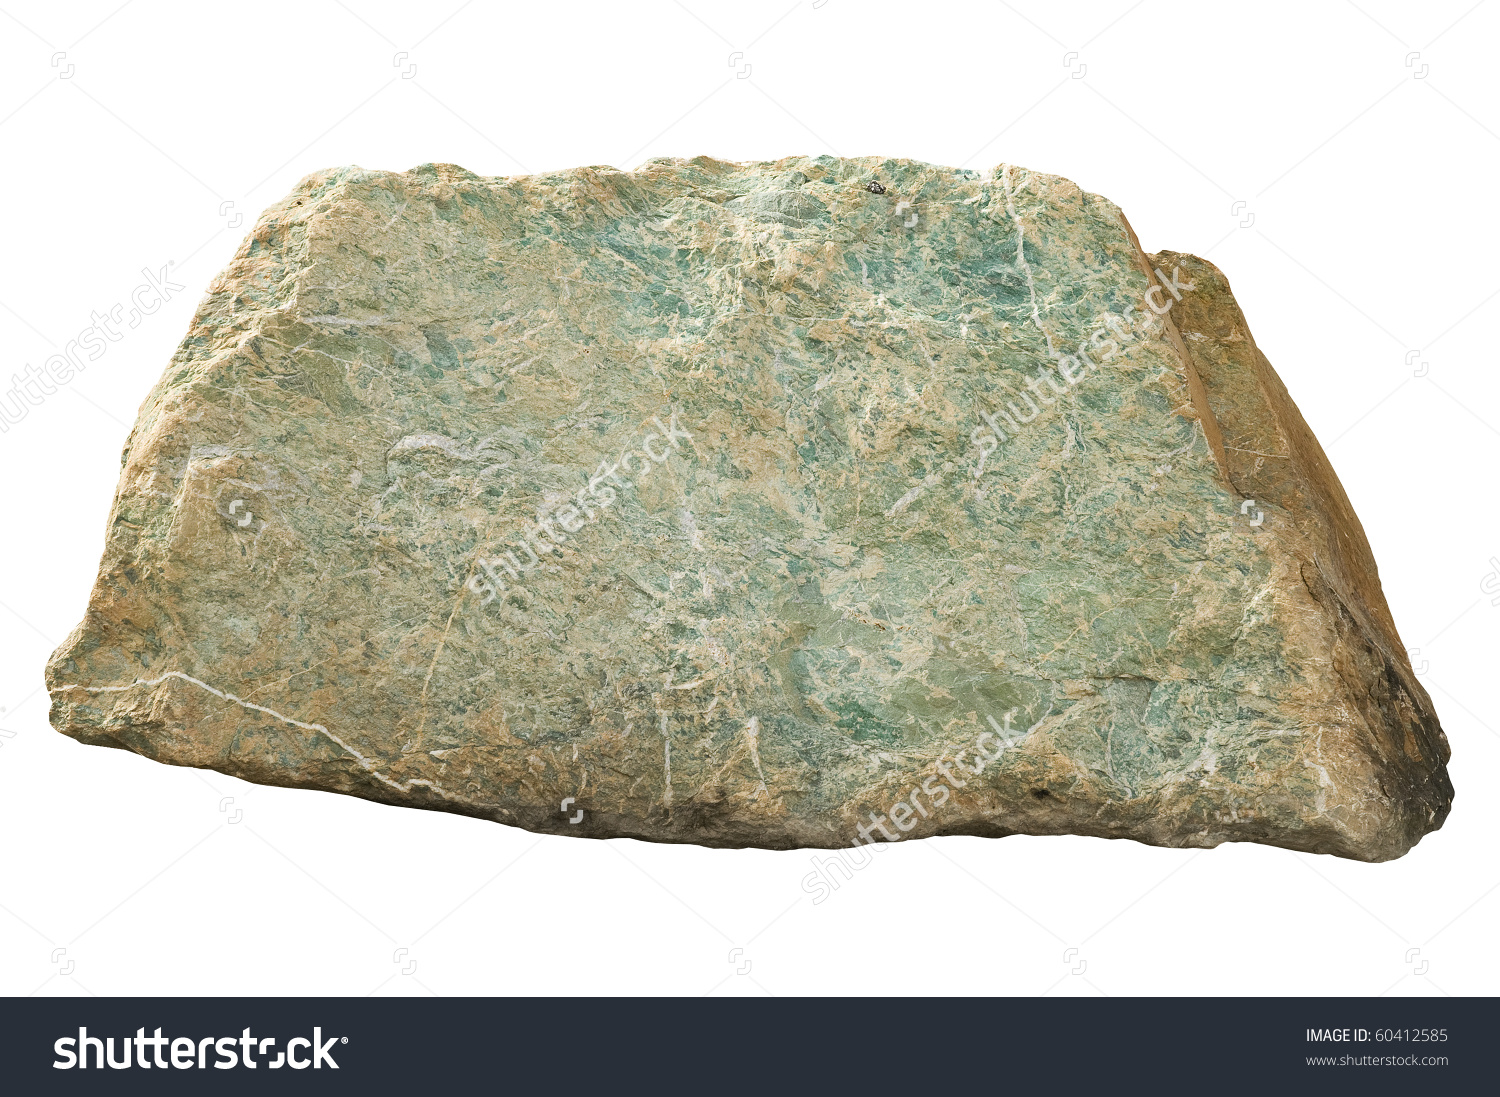 Large Heavy Piece Stone On White Stock Photo 60412585.